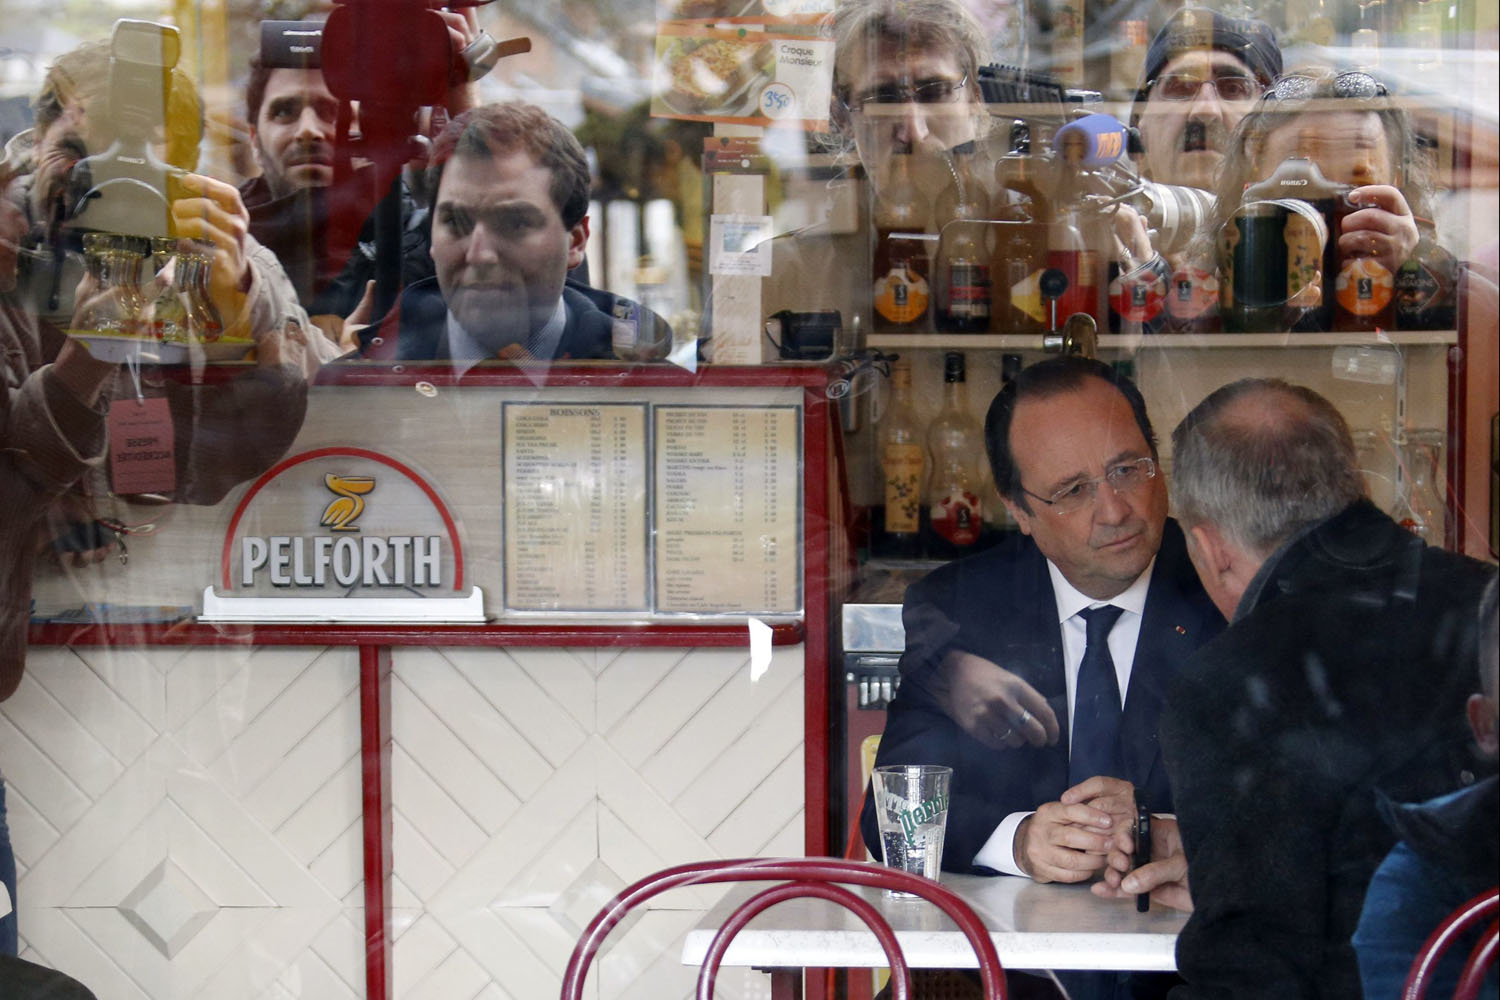 Mar. 23, 2014. French President Francois Hollande is seen speaking in a bar after voting in the first round in the French mayoral elections in Tulle.